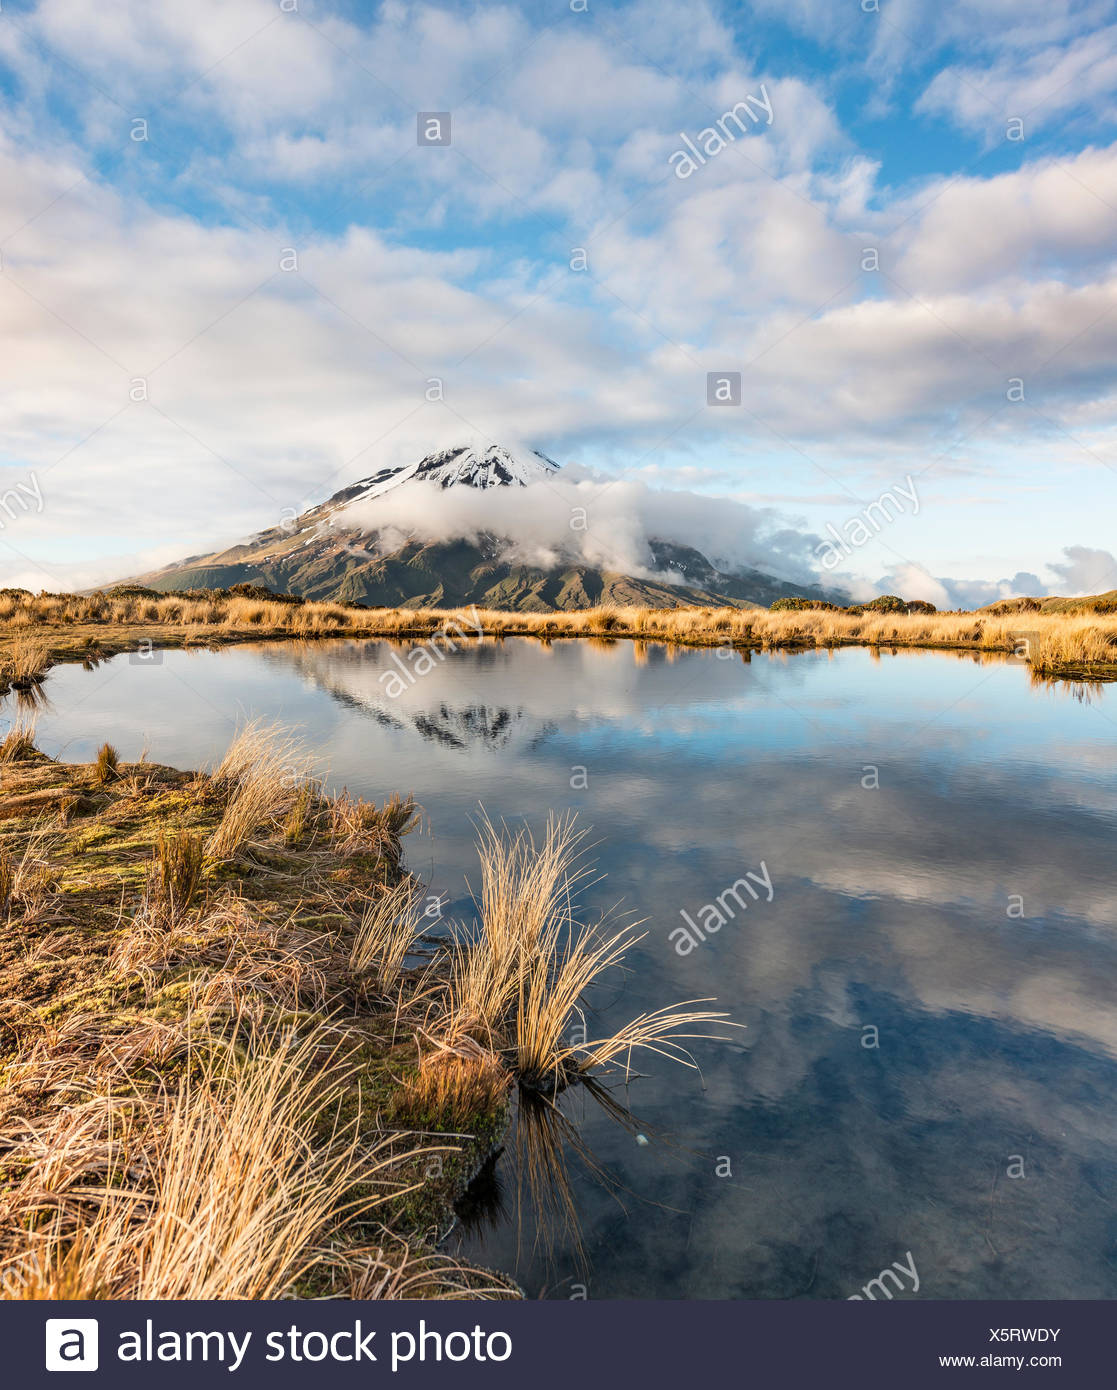 Reflection in Pouakai Tarn, stratovolcano Mount Taranaki or Mount Egmont, Egmont National Park, Taranaki, New Zealand - Stock Image